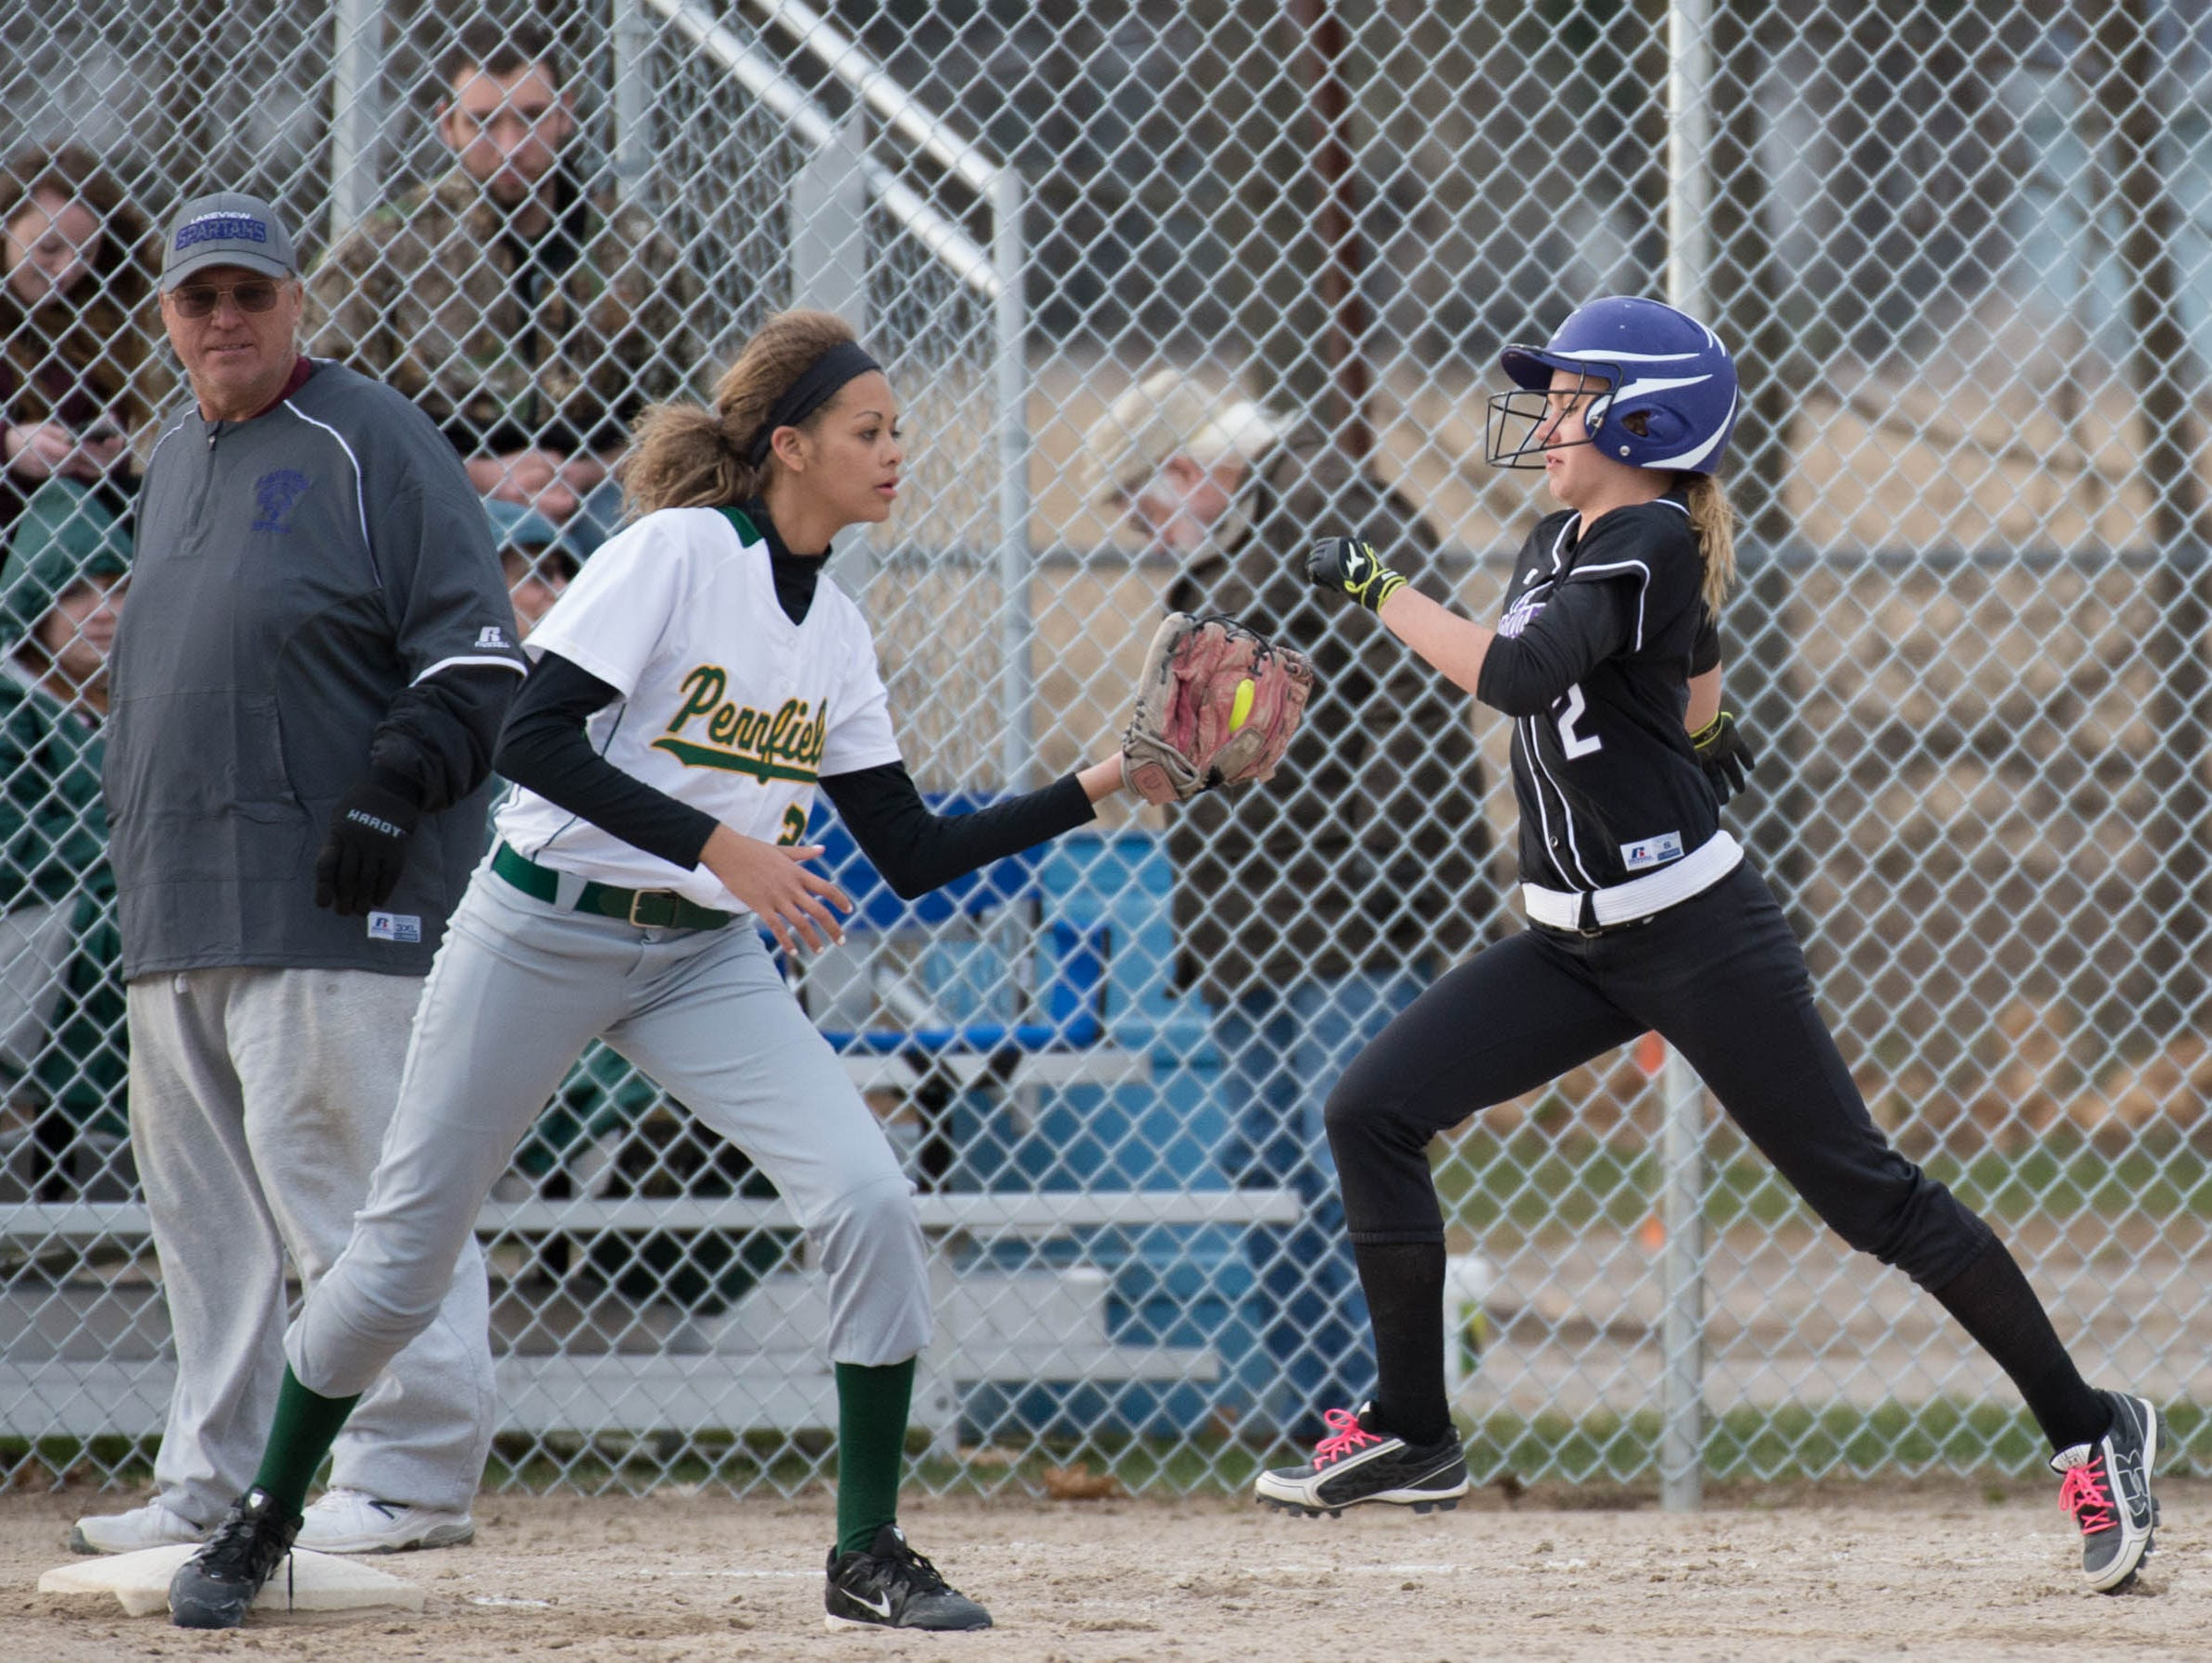 Pennfield's Alexa Stephenson (2) tags Lakeview's Haidyn Markos (2) during a game earlier this season.